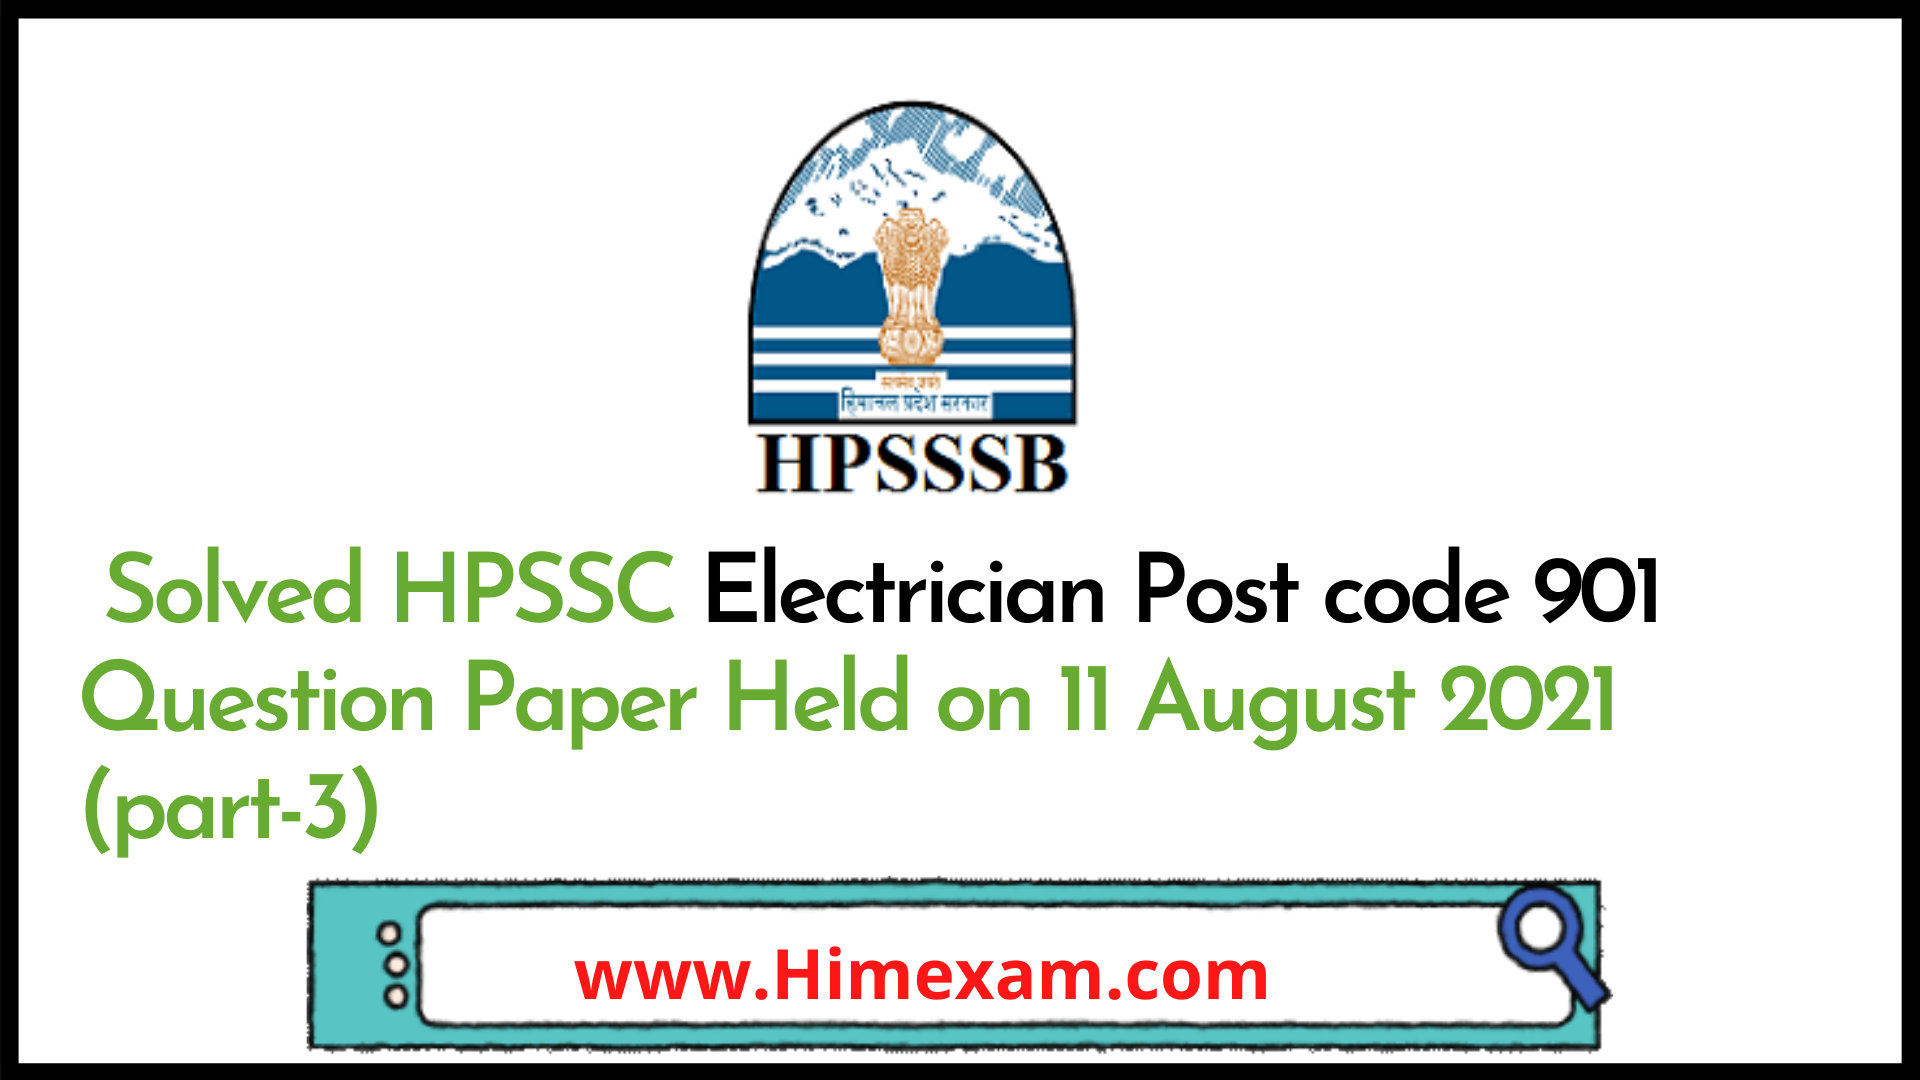 Solved HPSSC Electrician  Post code 901 Question Paper Held on 11 August 2021(Part-3)